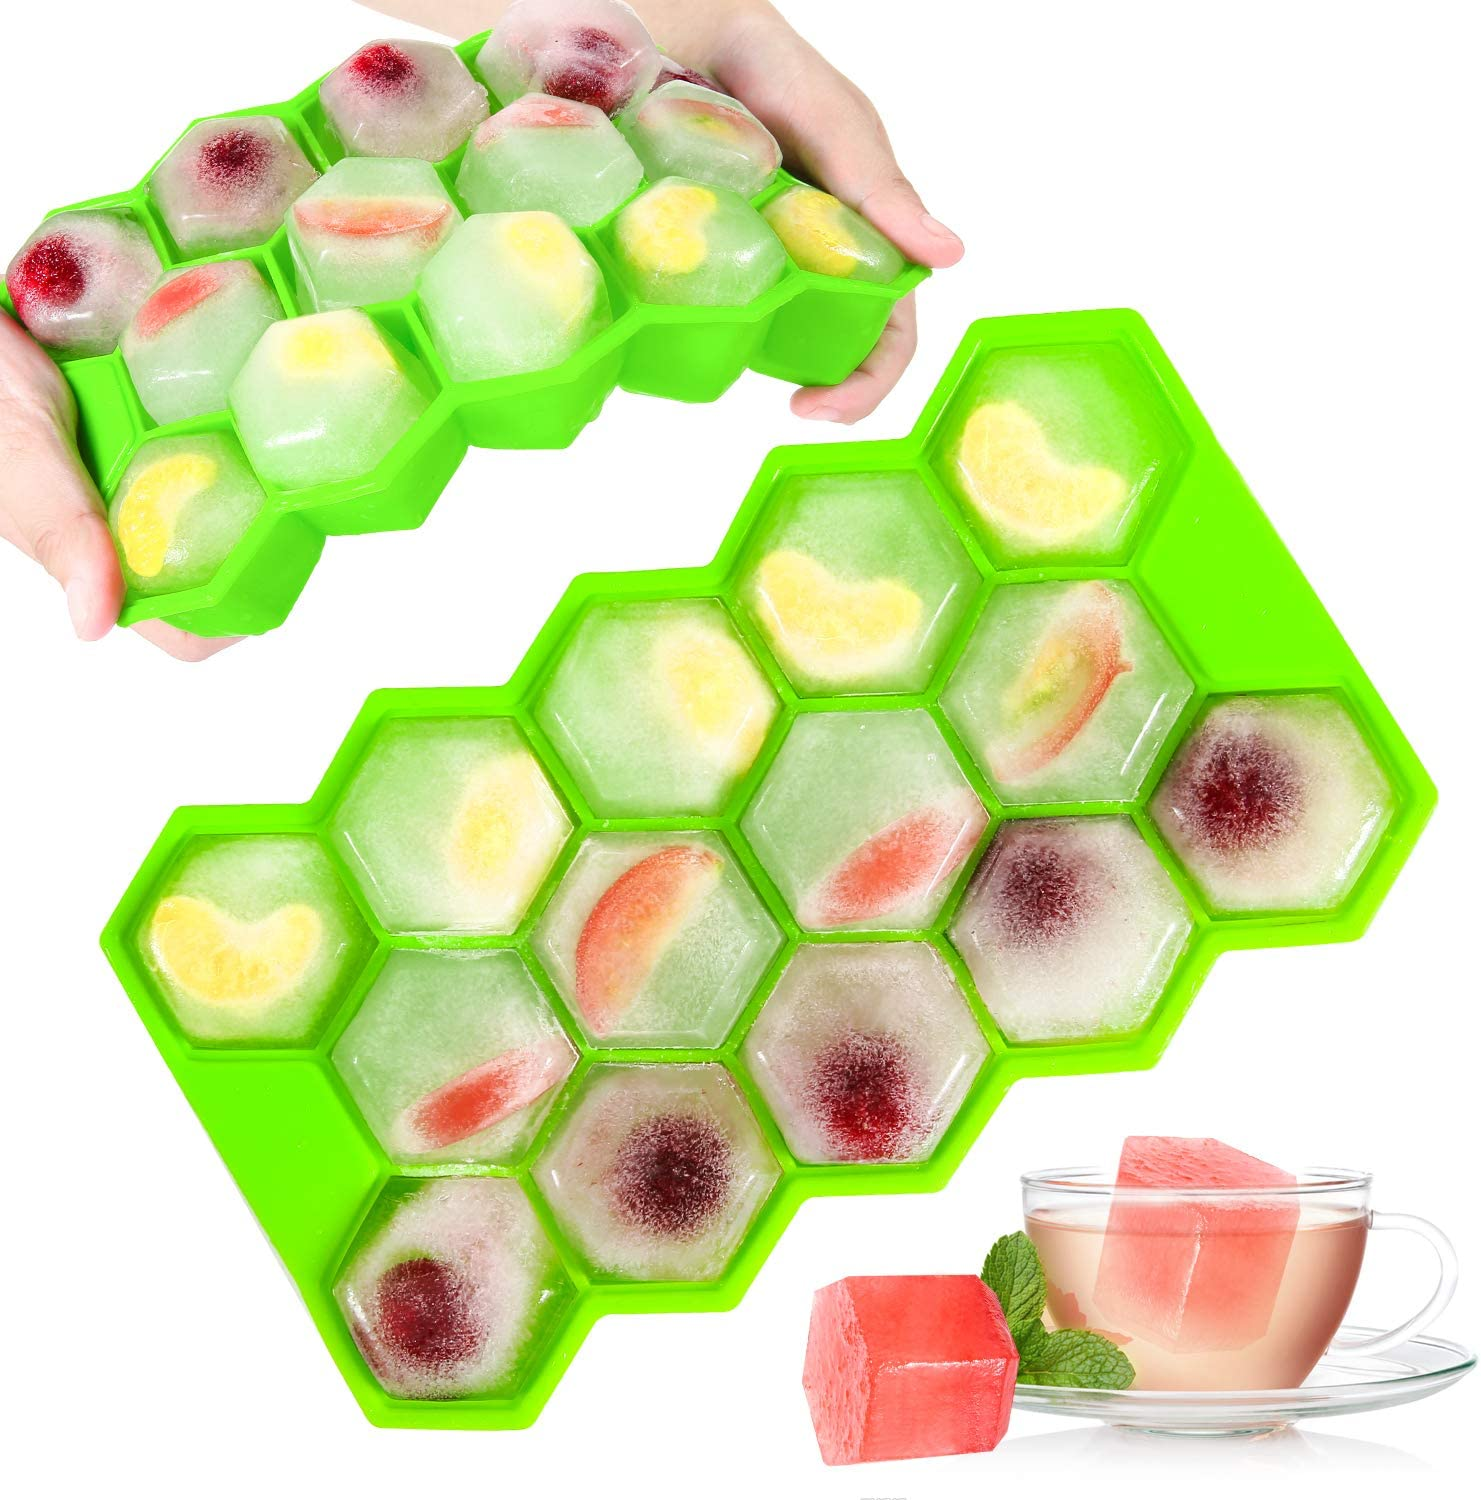 Ice Cube Trays with Lids,2-Pack 28 Large Ice Cubes Food Grade Silica Gel Flexible and BPA Free with Removable and Sealed Lid Design Ice Cube Molds for Chilled Drinks, Whiskey